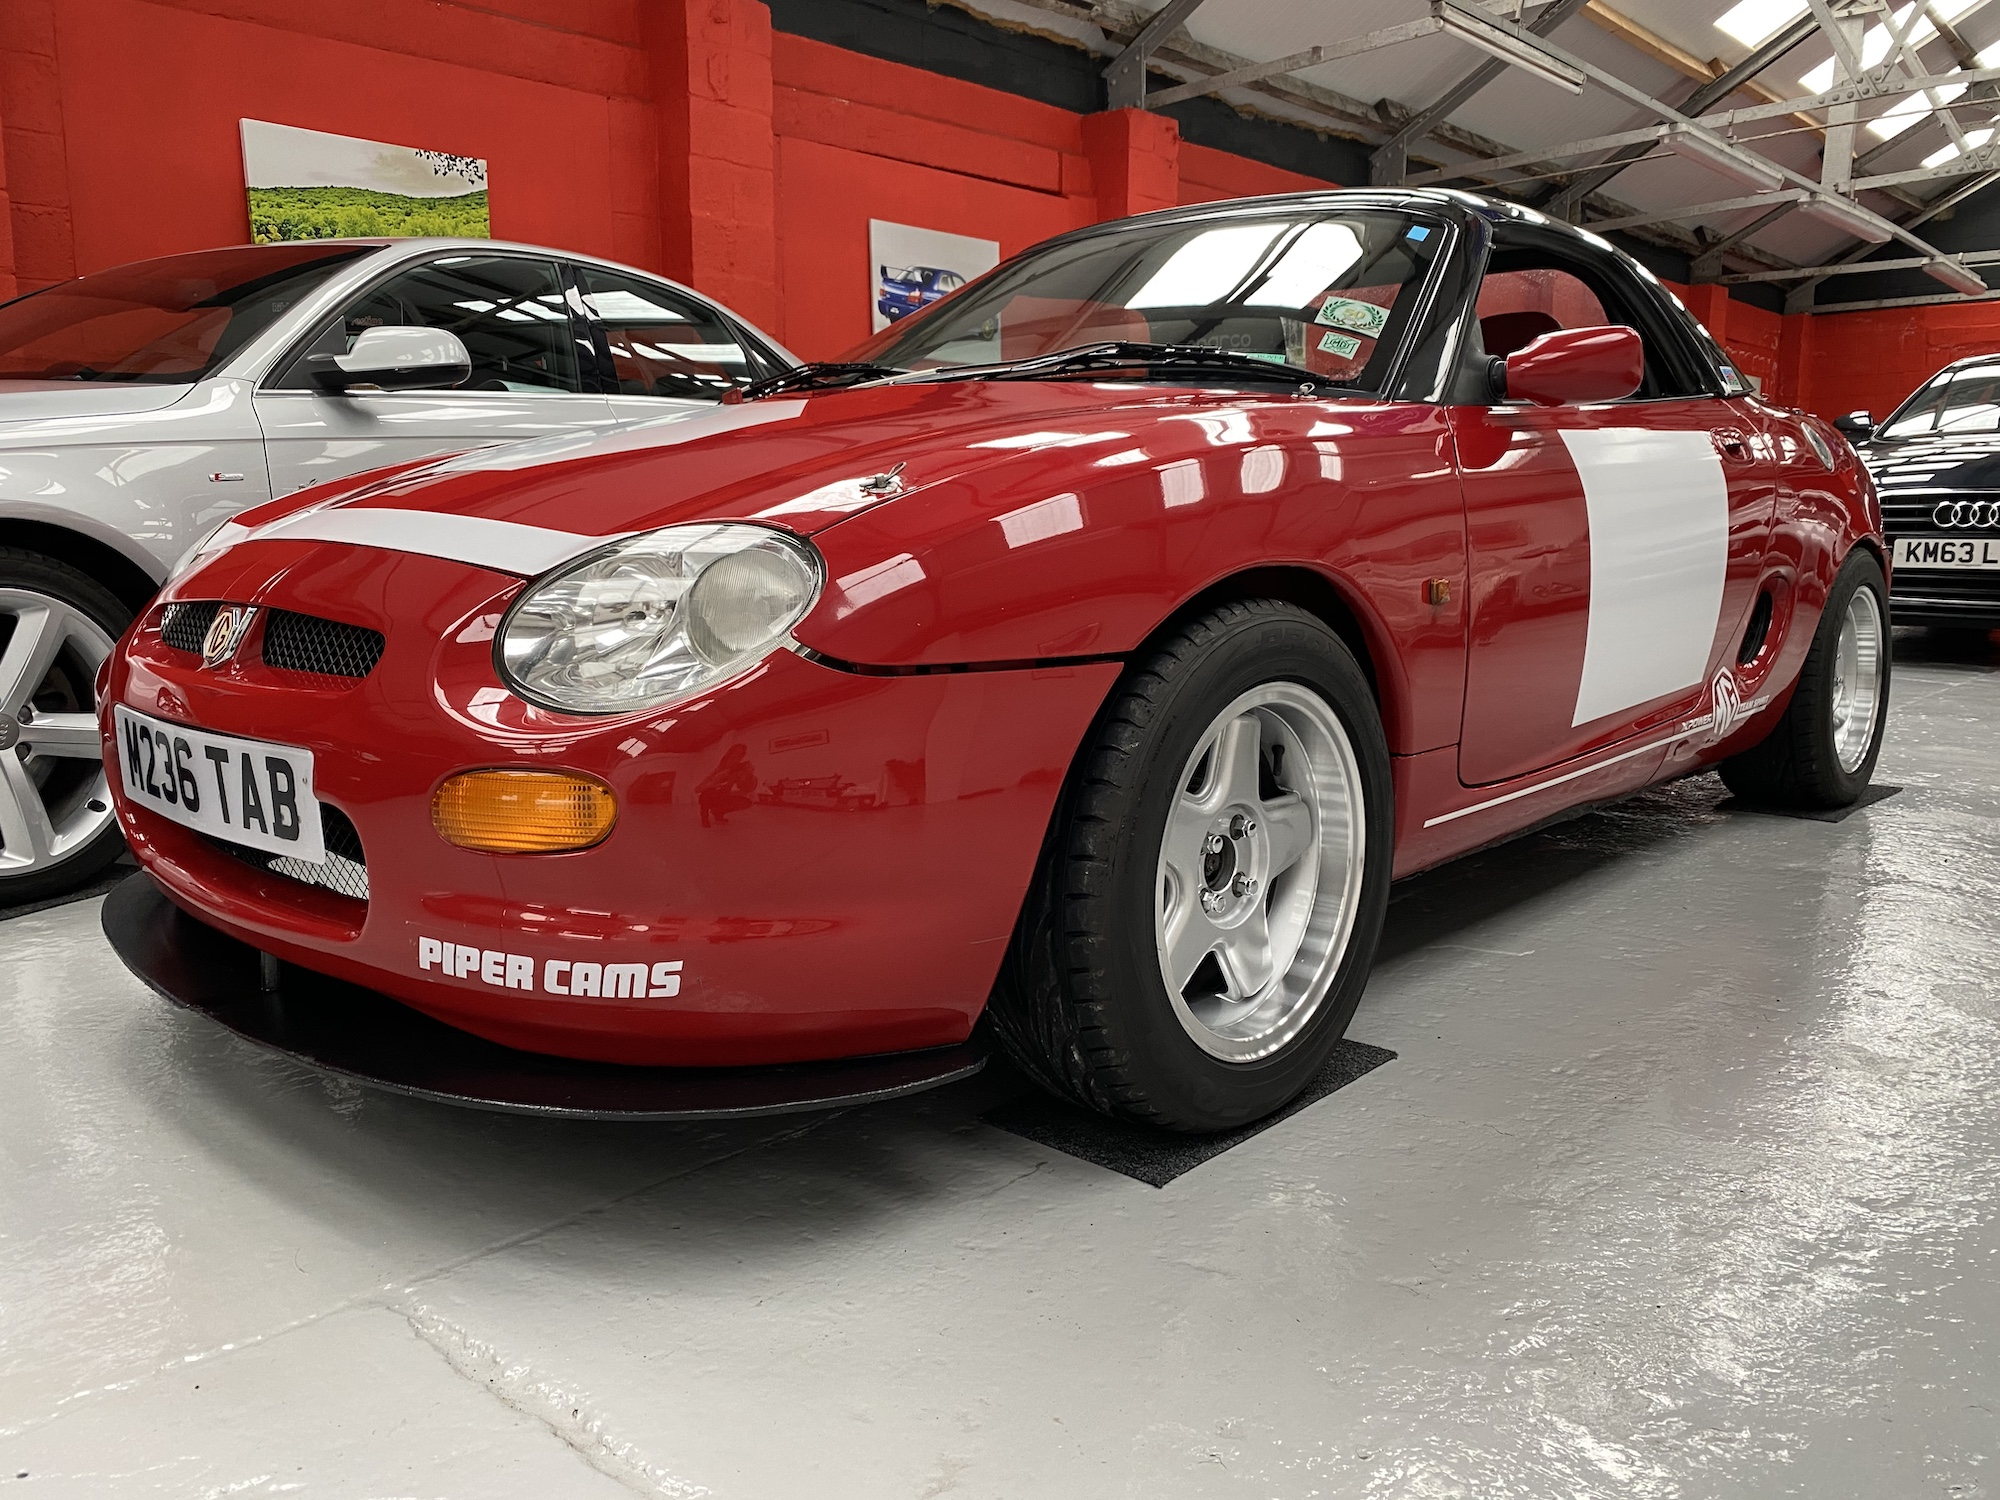 1995 MG F WORKS RACER